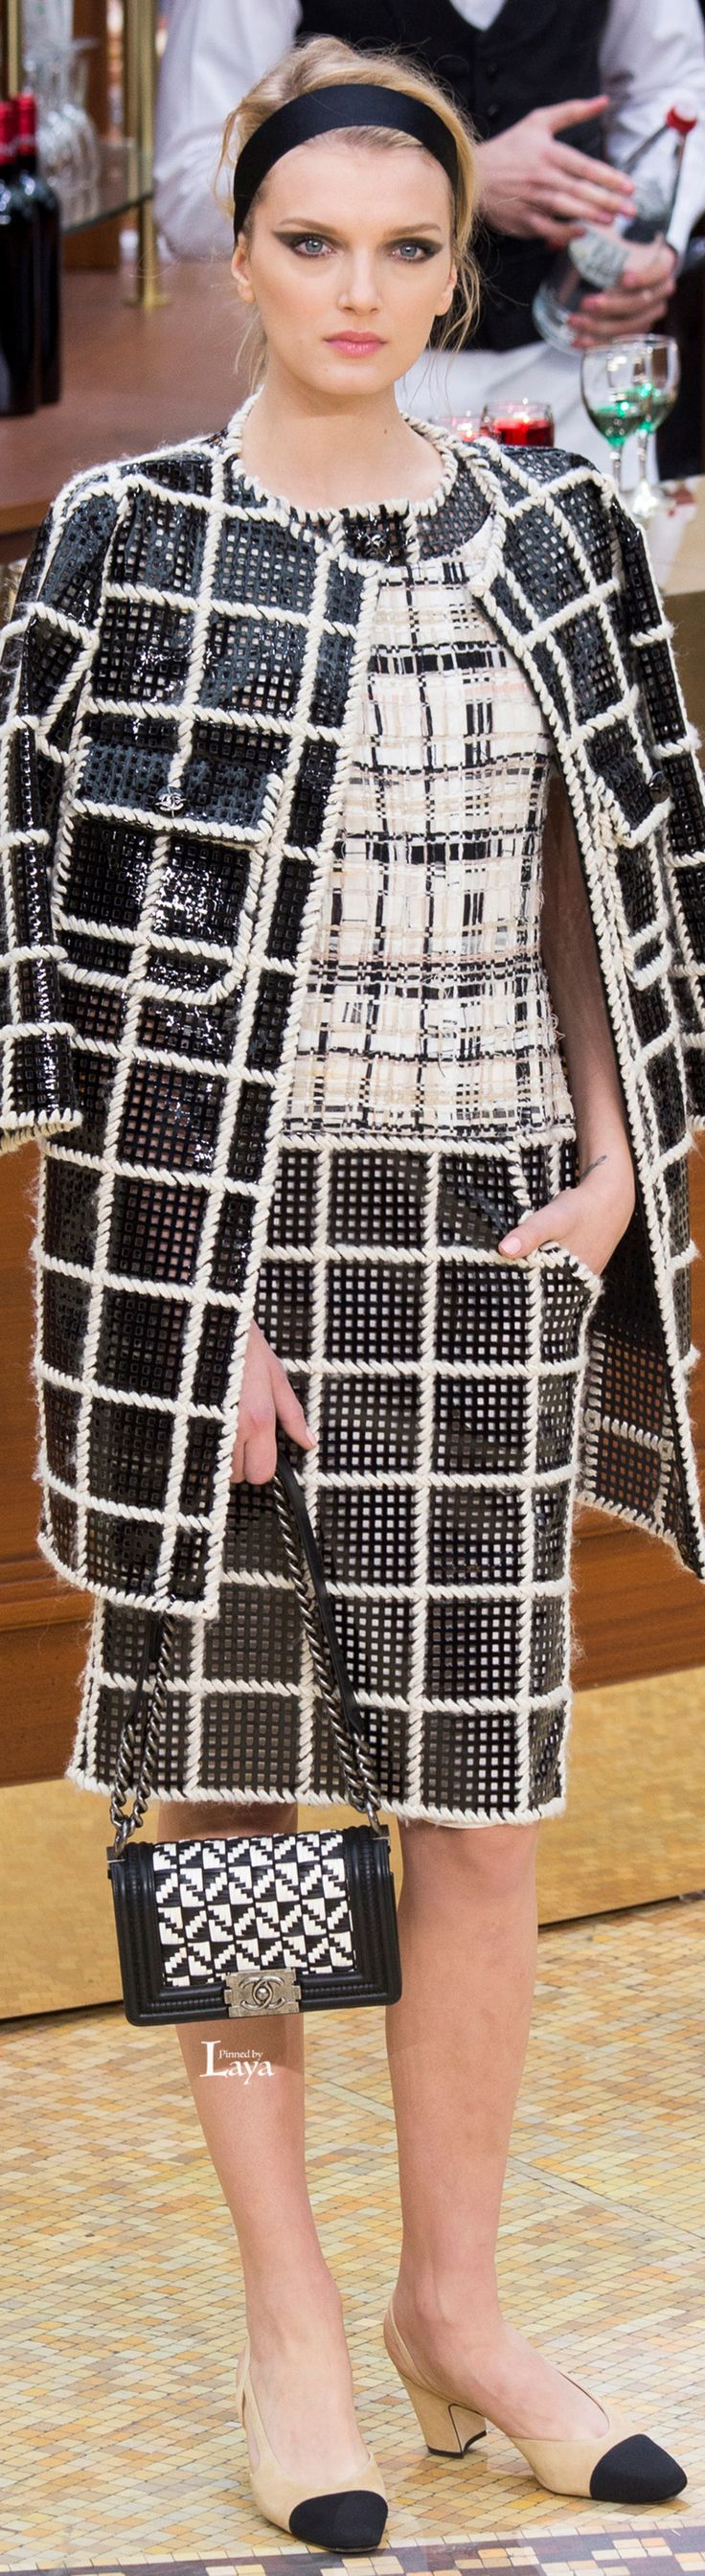 Chanel Fall Winter 2015-16 RTW